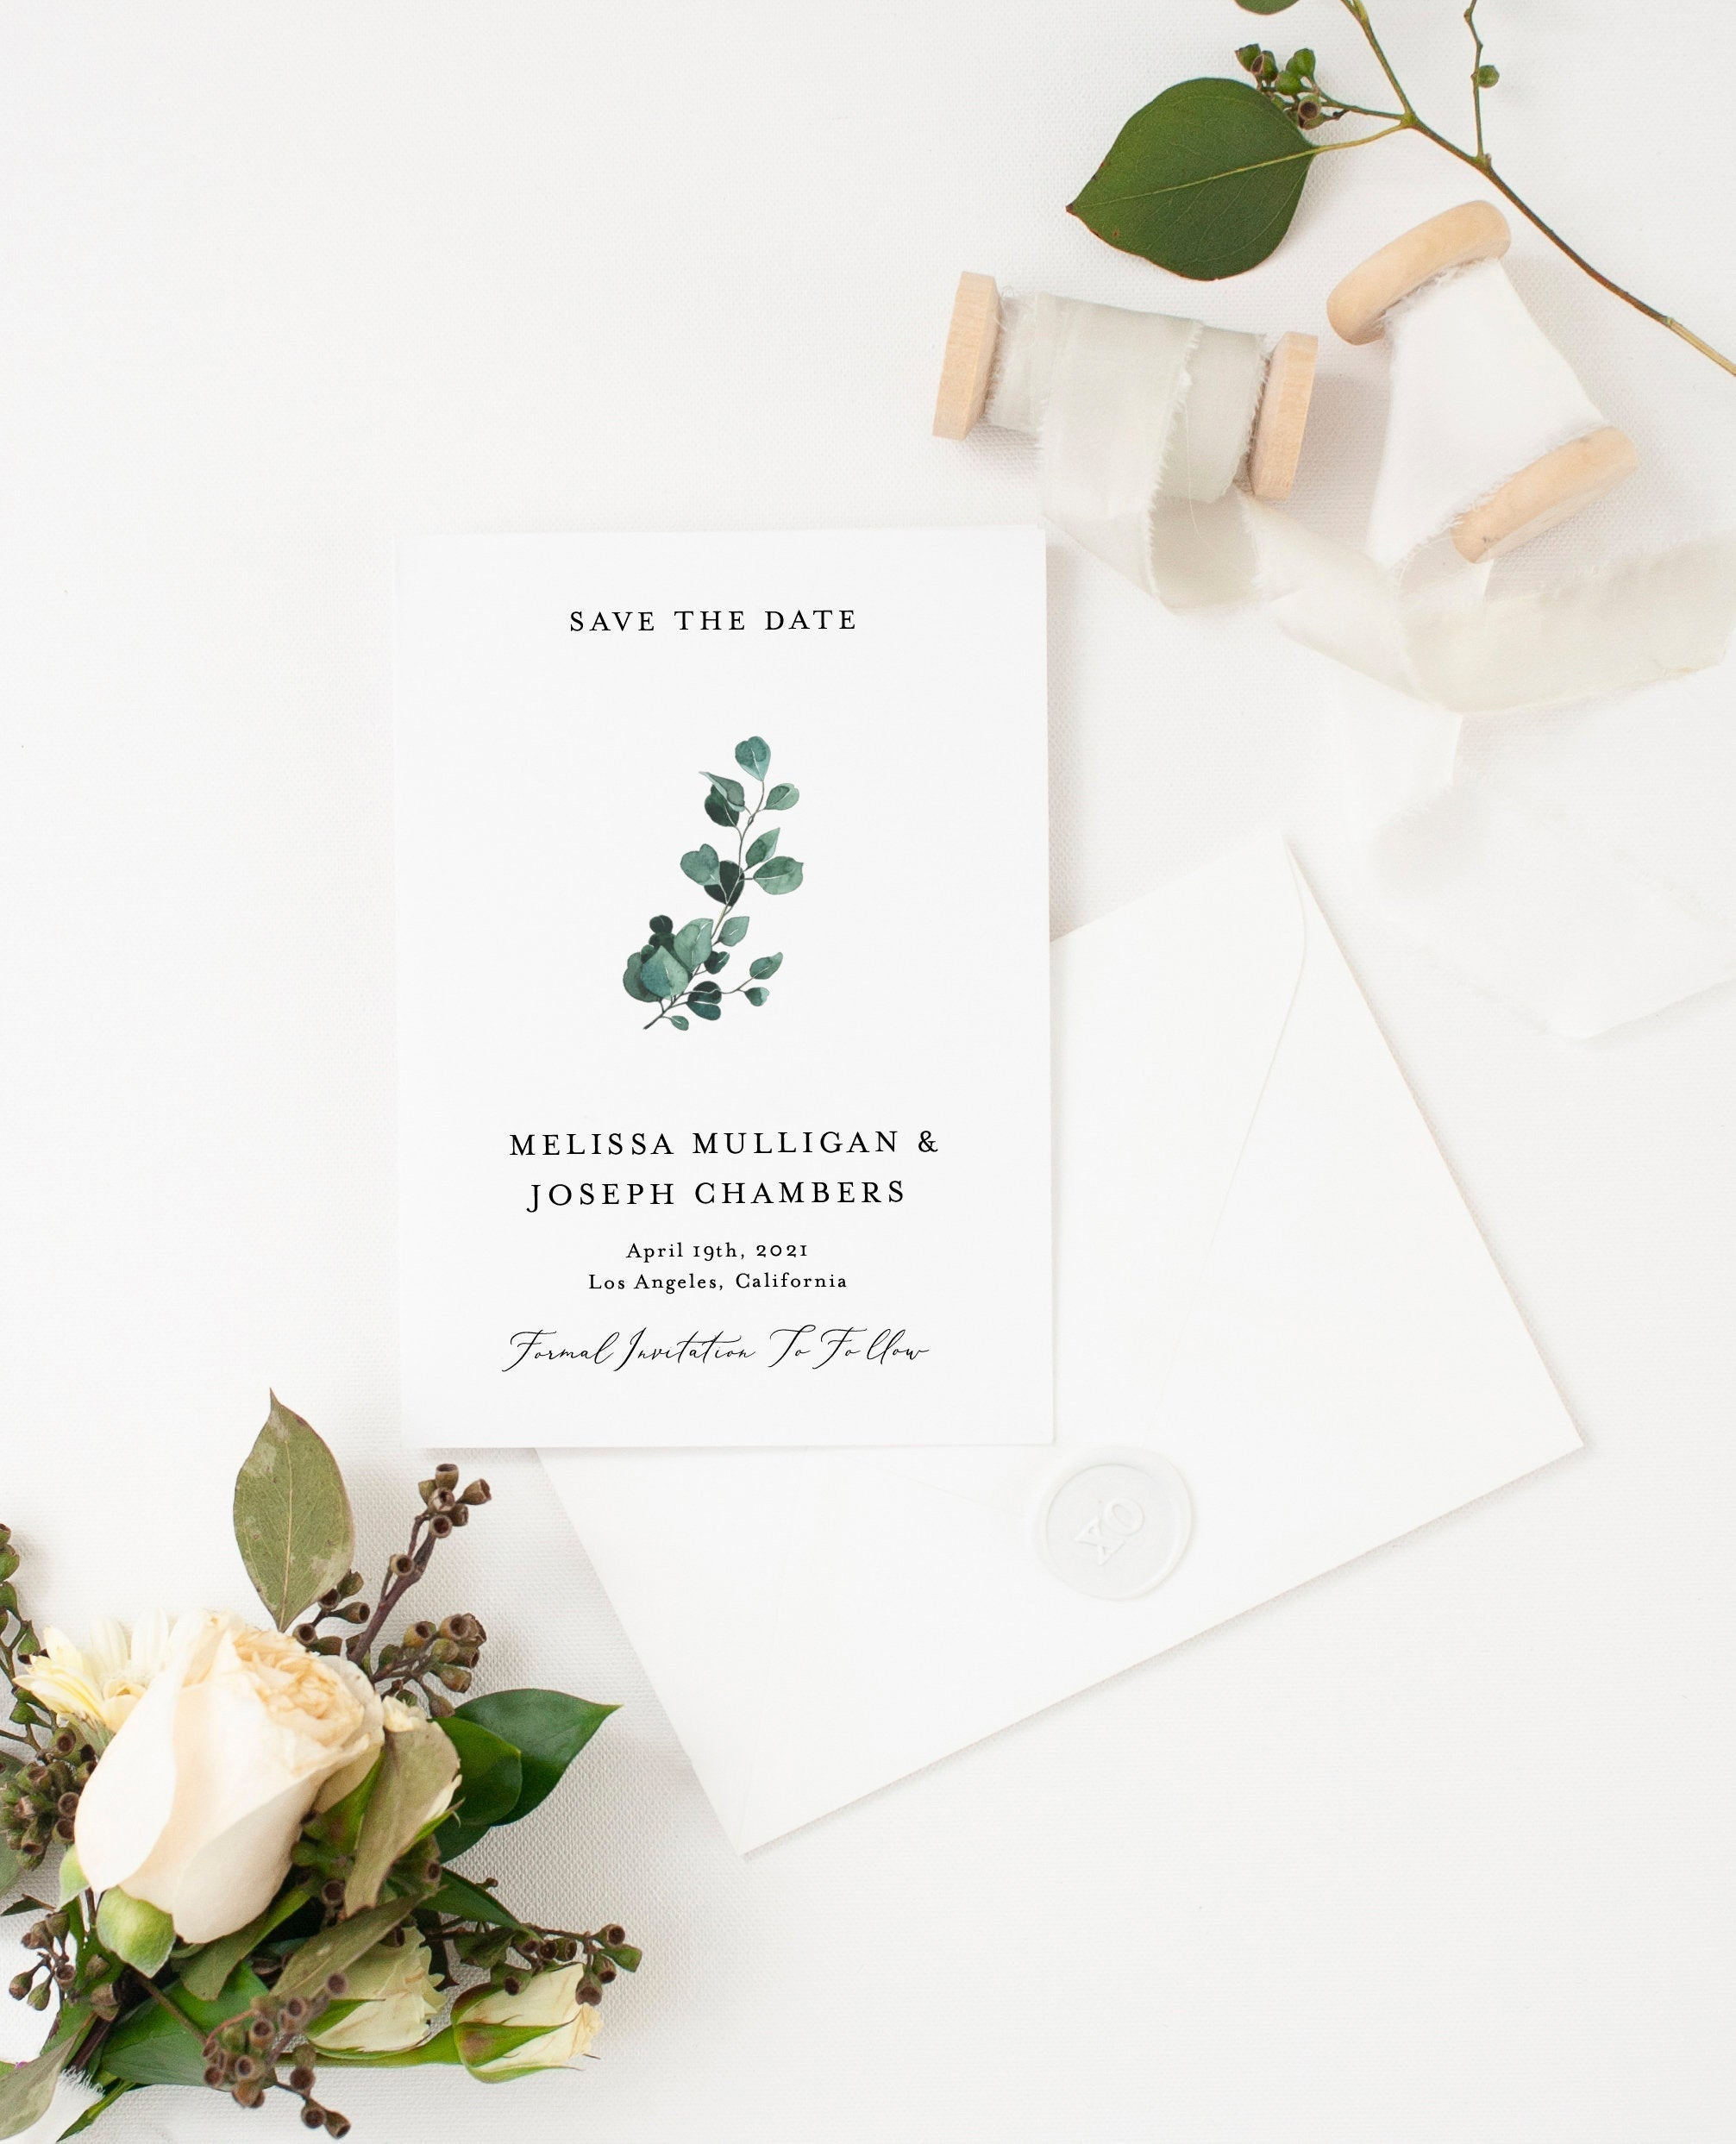 Printable Save-the-Date Template, Engagement Invite, 100% editable text, Greenery Wedding Templett  - Aisha